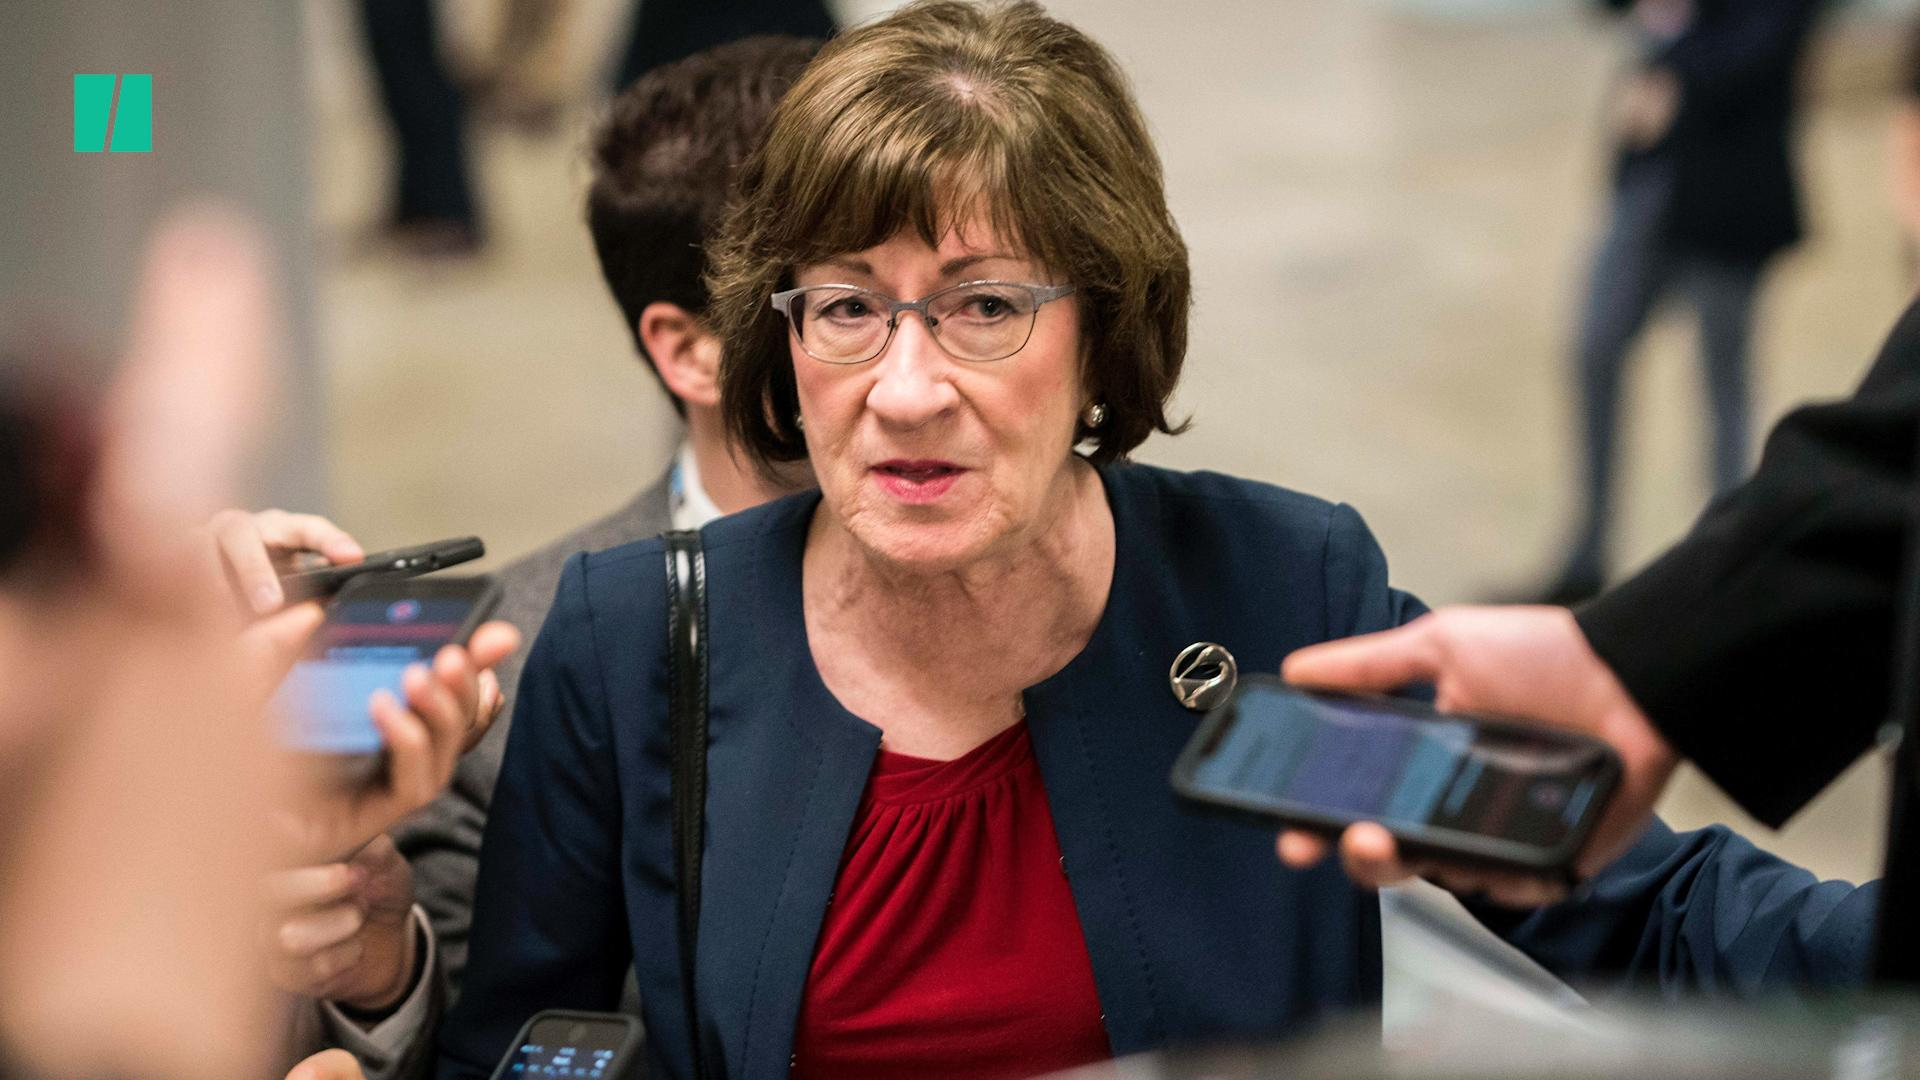 Susan Collins Is Fundraising Off Her Brett Kavanaugh Vote: 'Far Left' Coming After Me